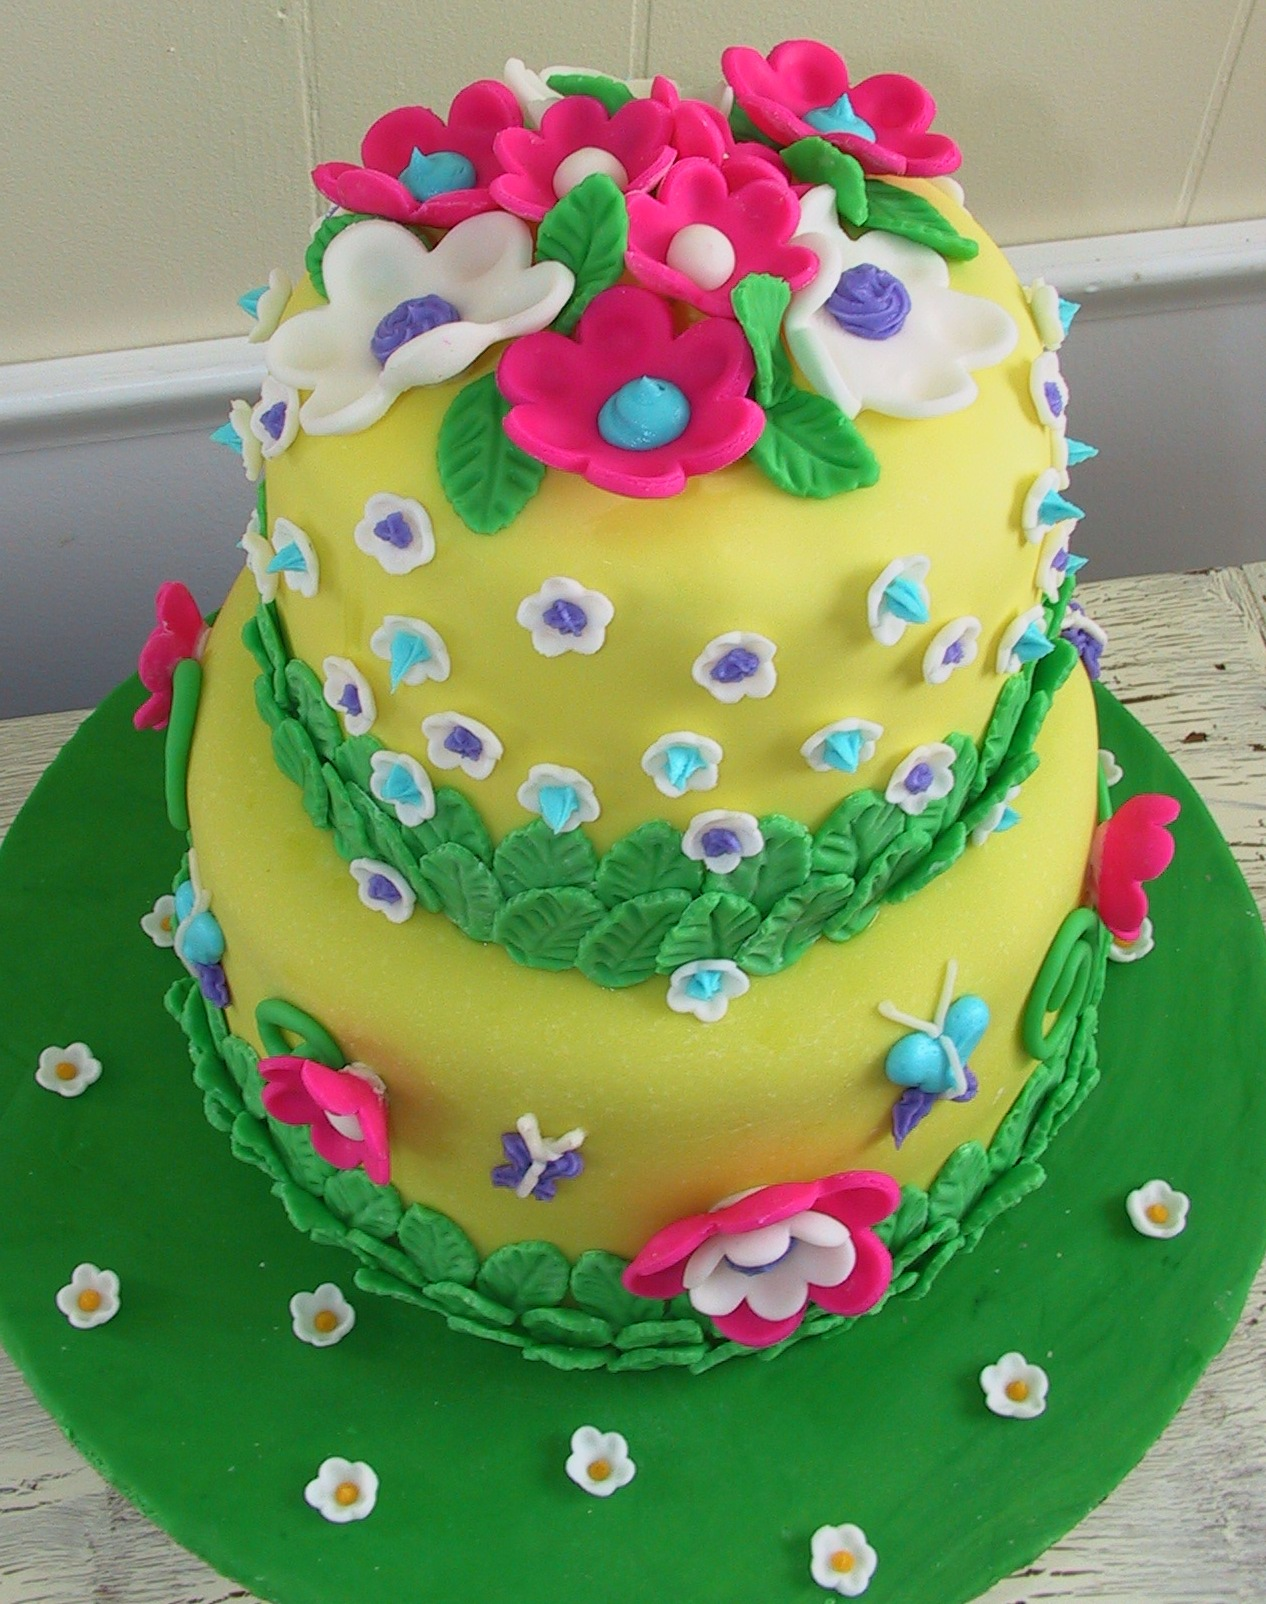 Cake Decorating Images : Flower Cakes   Decoration Ideas Little Birthday Cakes